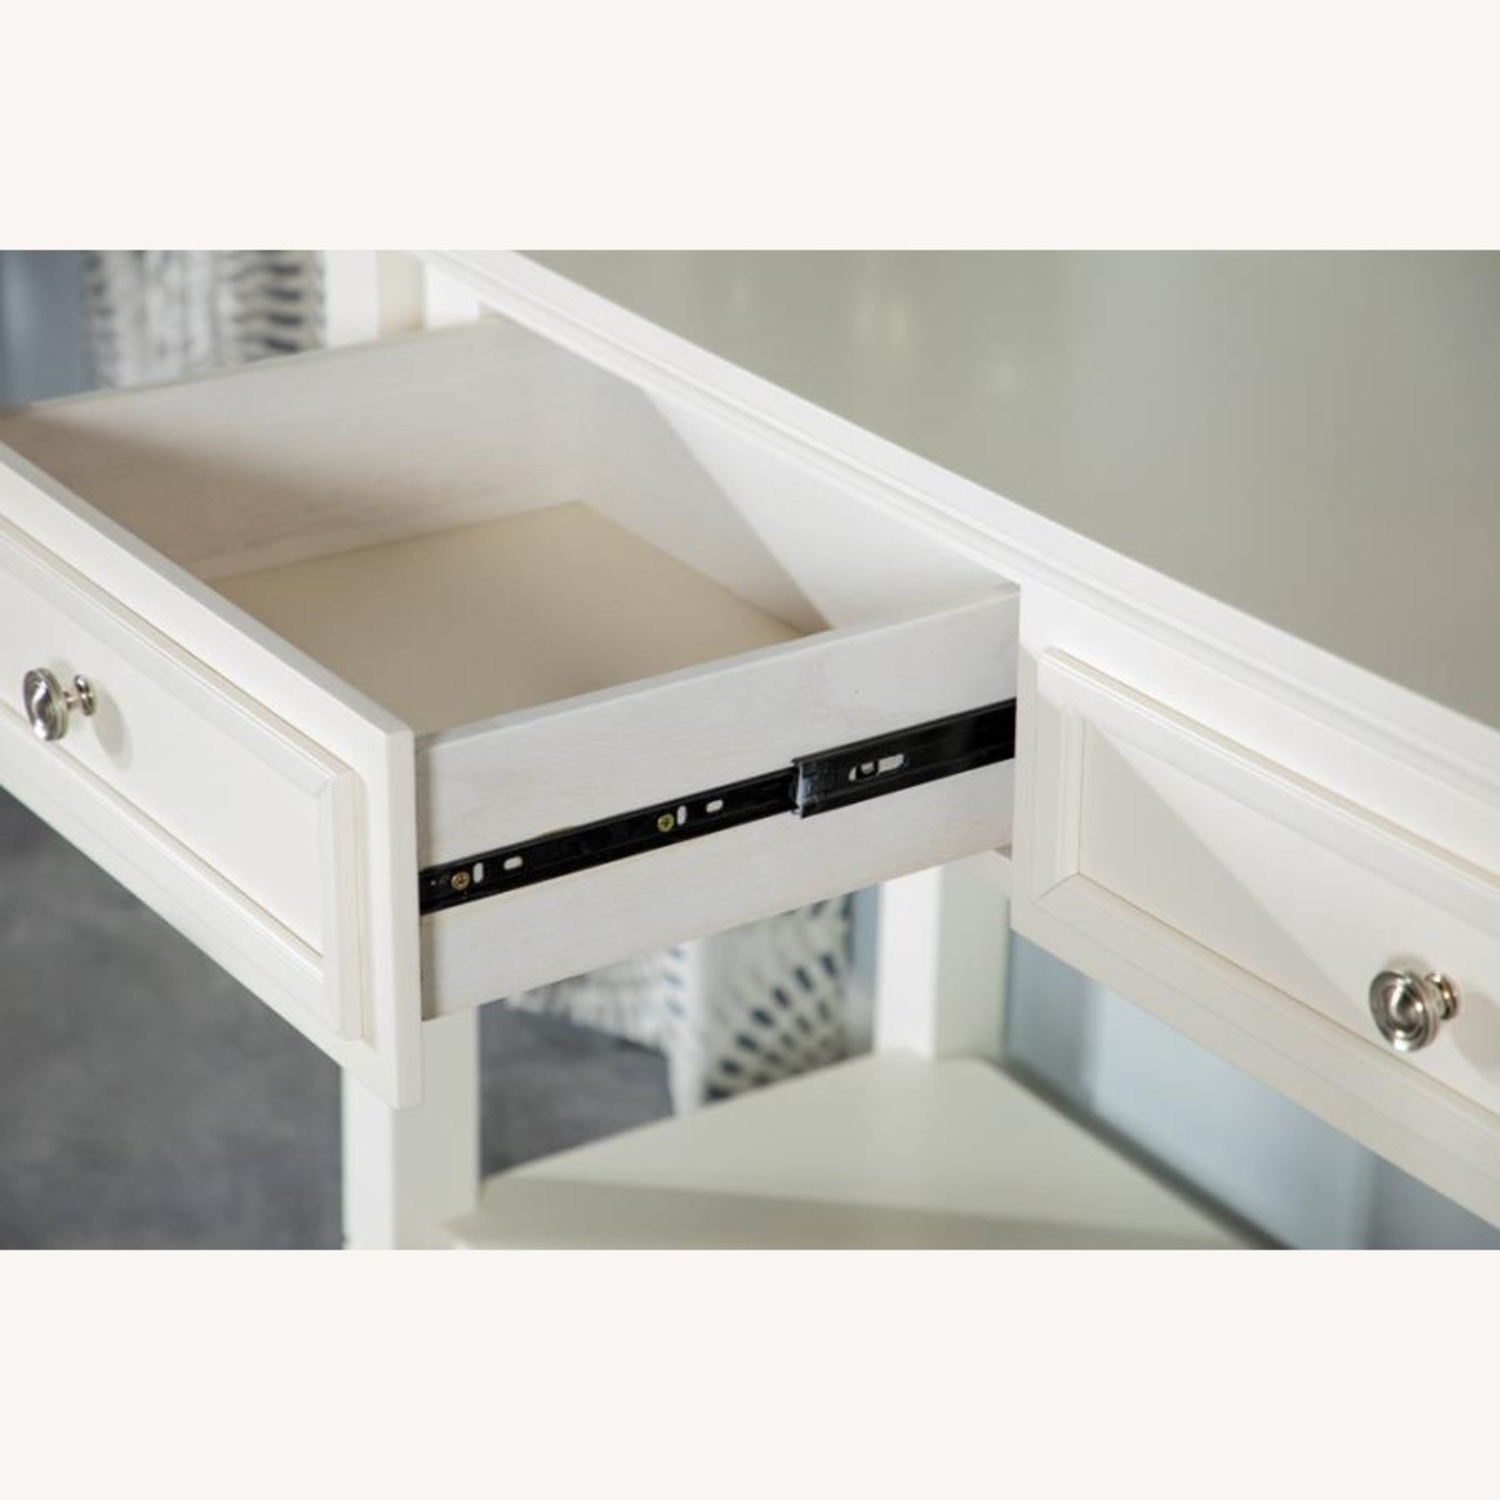 End Table In Brushed Nickel Finish W/ Lower Shelf - image-1